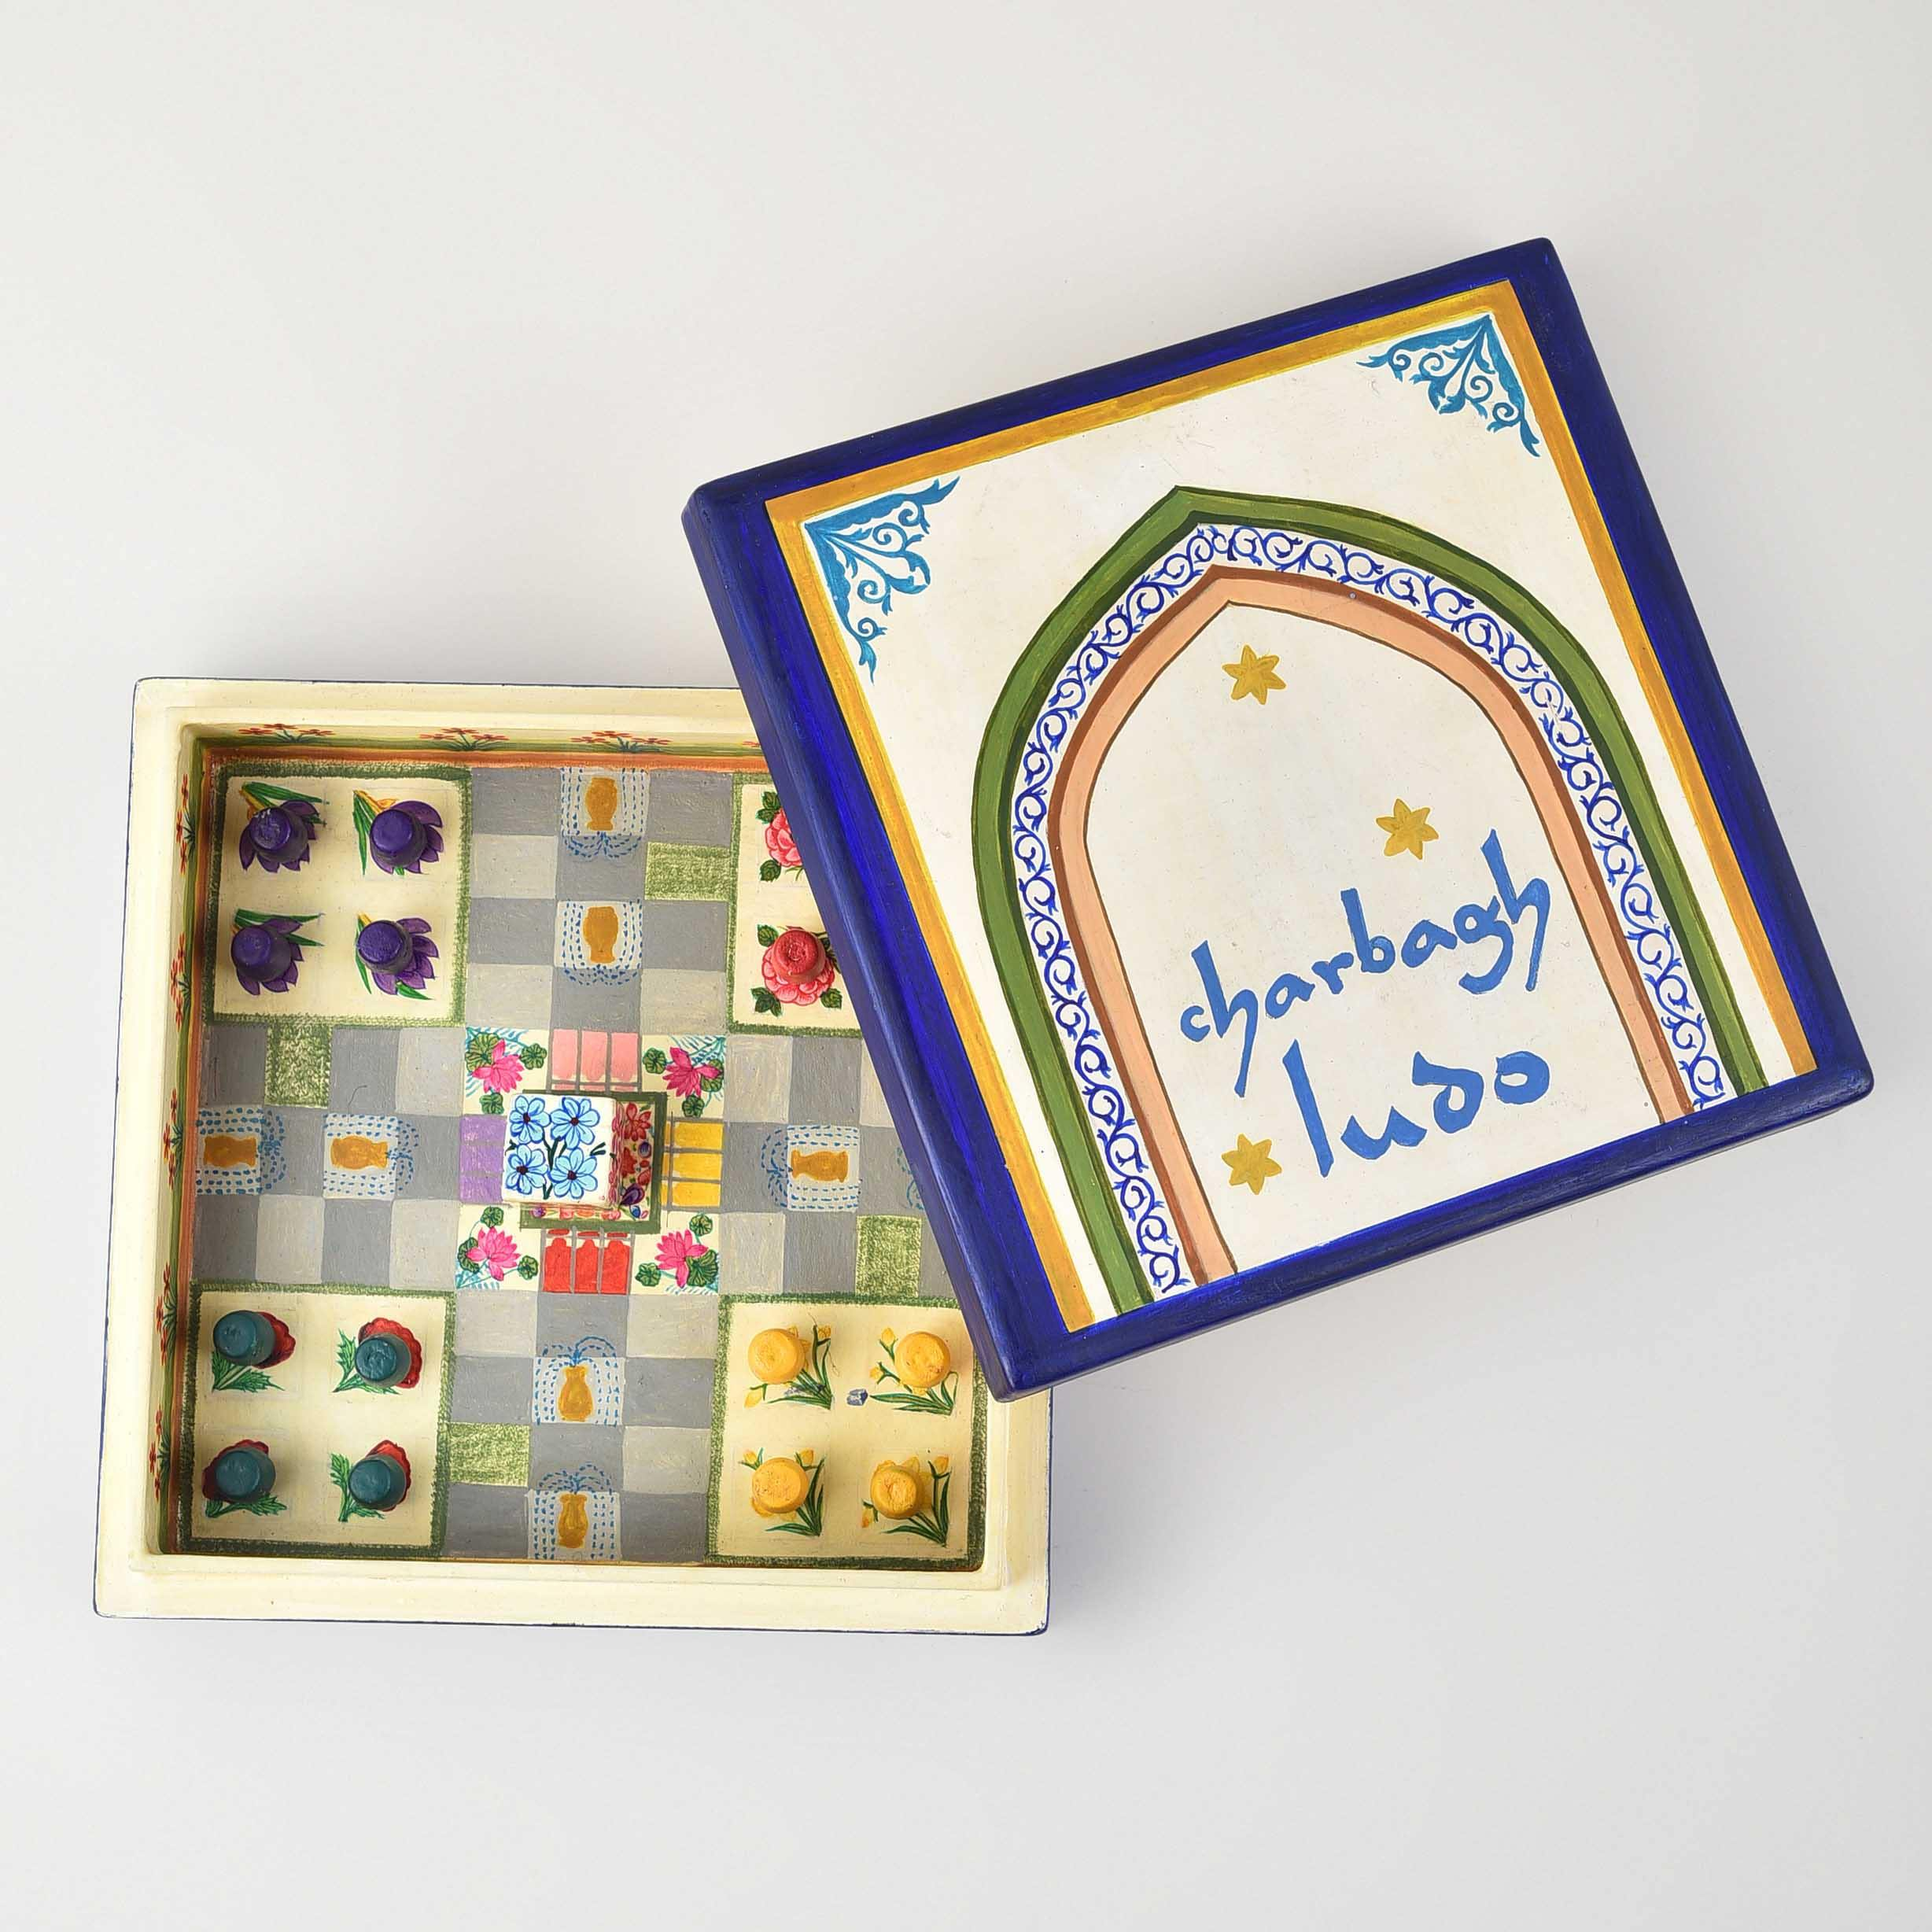 Charbagh Ludo - Papier Mache Game Cream Small